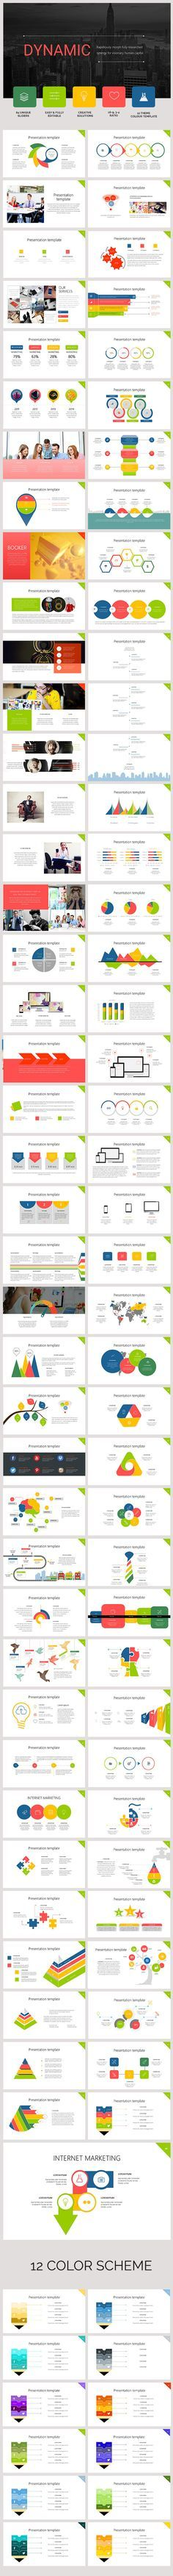 Dinamic PowerPoint Template #powerpoint #powerpointtemplate #presentation Download: http://graphicriver.net/item/dinamic-powerpoint-template/11937988?ref=ksioks